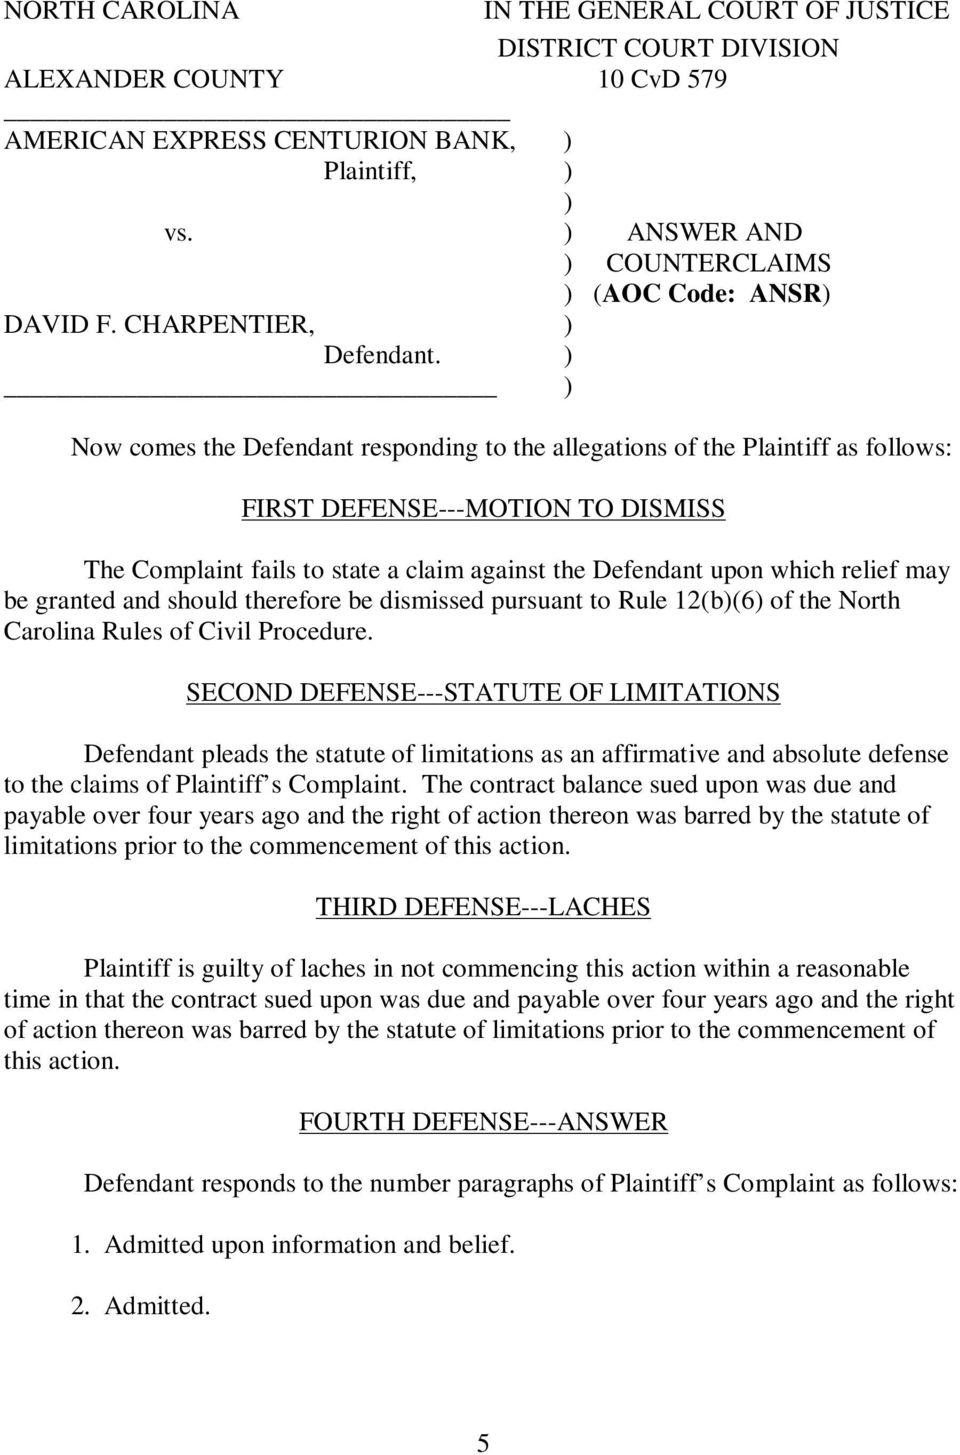 Now comes the Defendant responding to the allegations of the Plaintiff as follows: FIRST DEFENSE---MOTION TO DISMISS The Complaint fails to state a claim against the Defendant upon which relief may